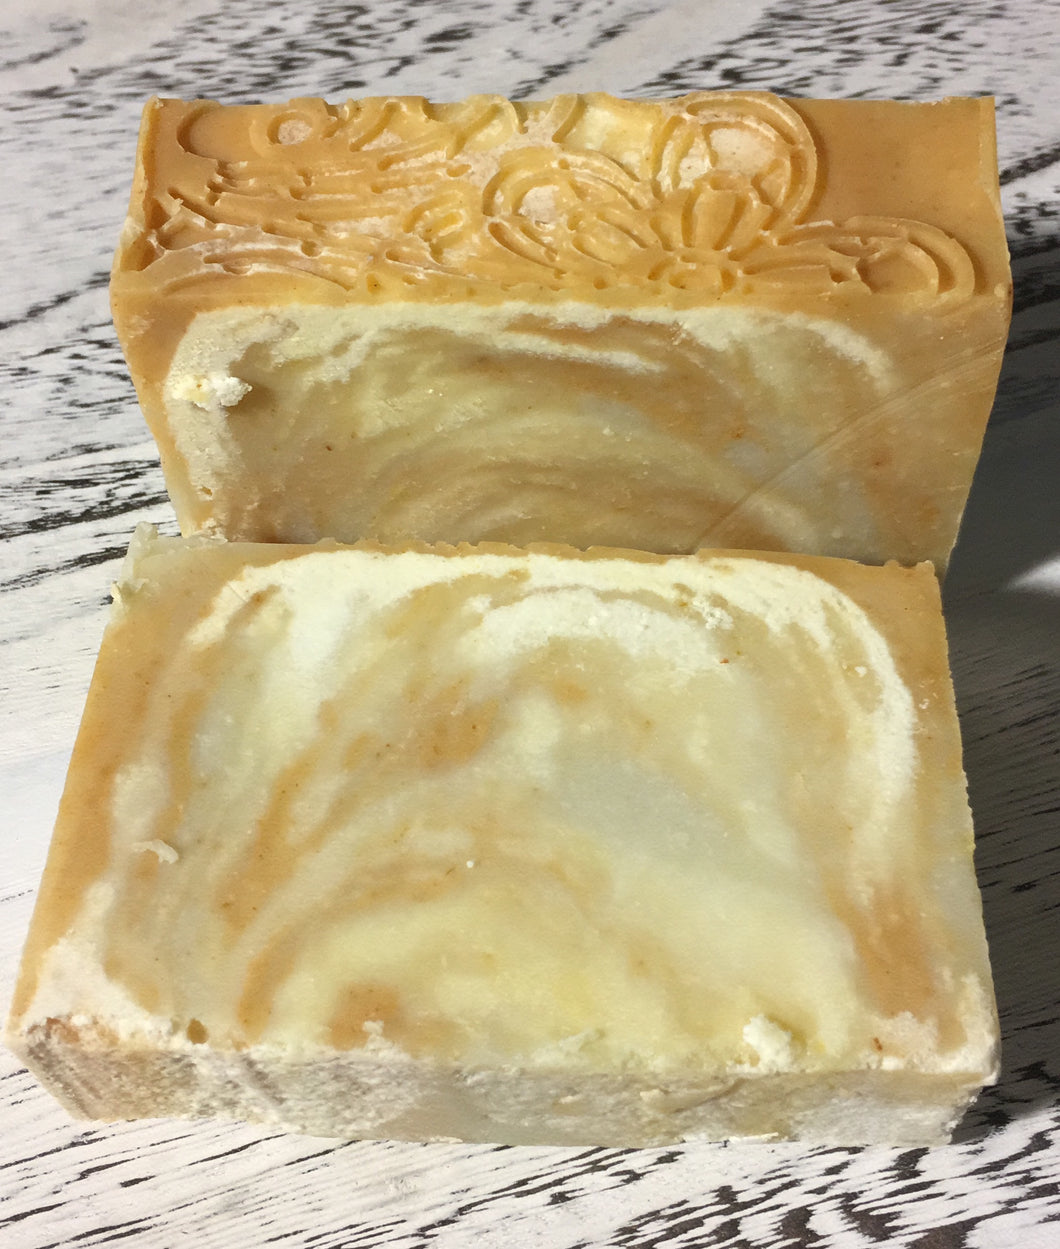 Citrus Sunshine Vegan Handcrafted Soap; all natural, vegan soap has the most delicious scent because of the blend of Essential Oils Lime, Lemon, Tangerine and Grapefruit. It's called Citrus Sunshine because of the feeling it evokes on a bright sunny day, it is sweet & refreshing.